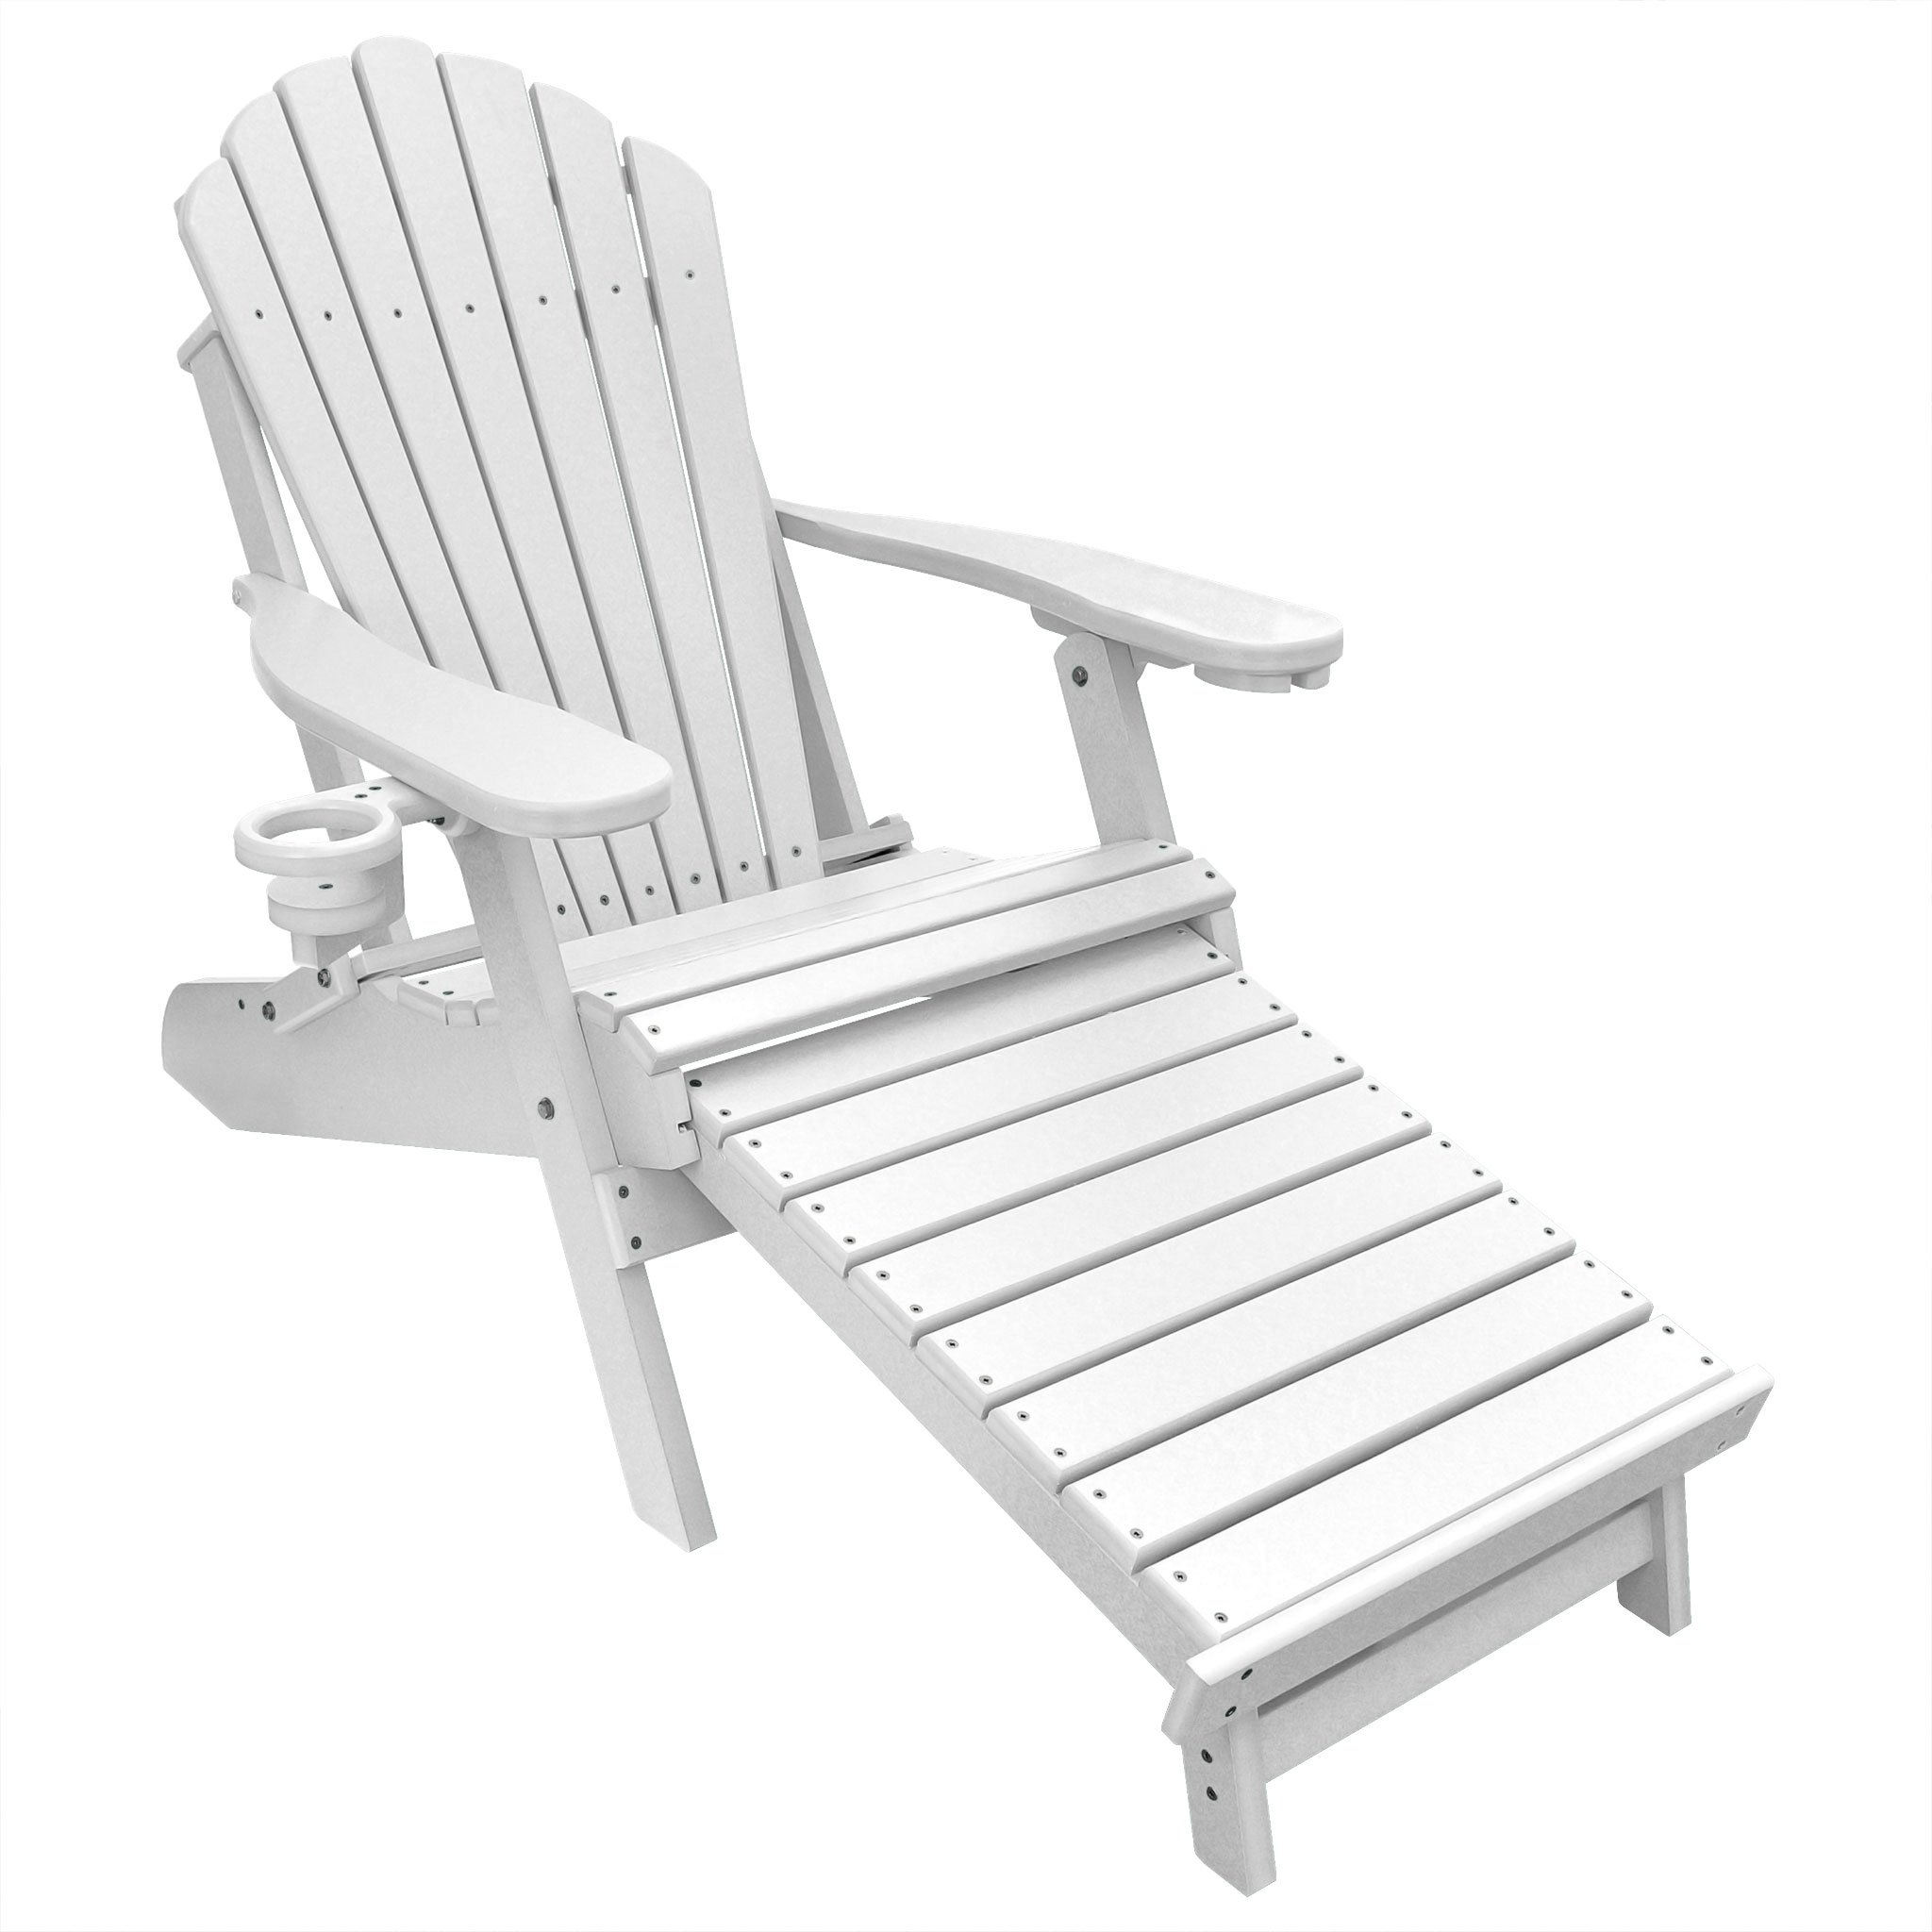 ECCB Outdoor Outer Banks Deluxe Oversized Poly Lumber Folding Adirondack Chair with Integrated Footrest (White) …